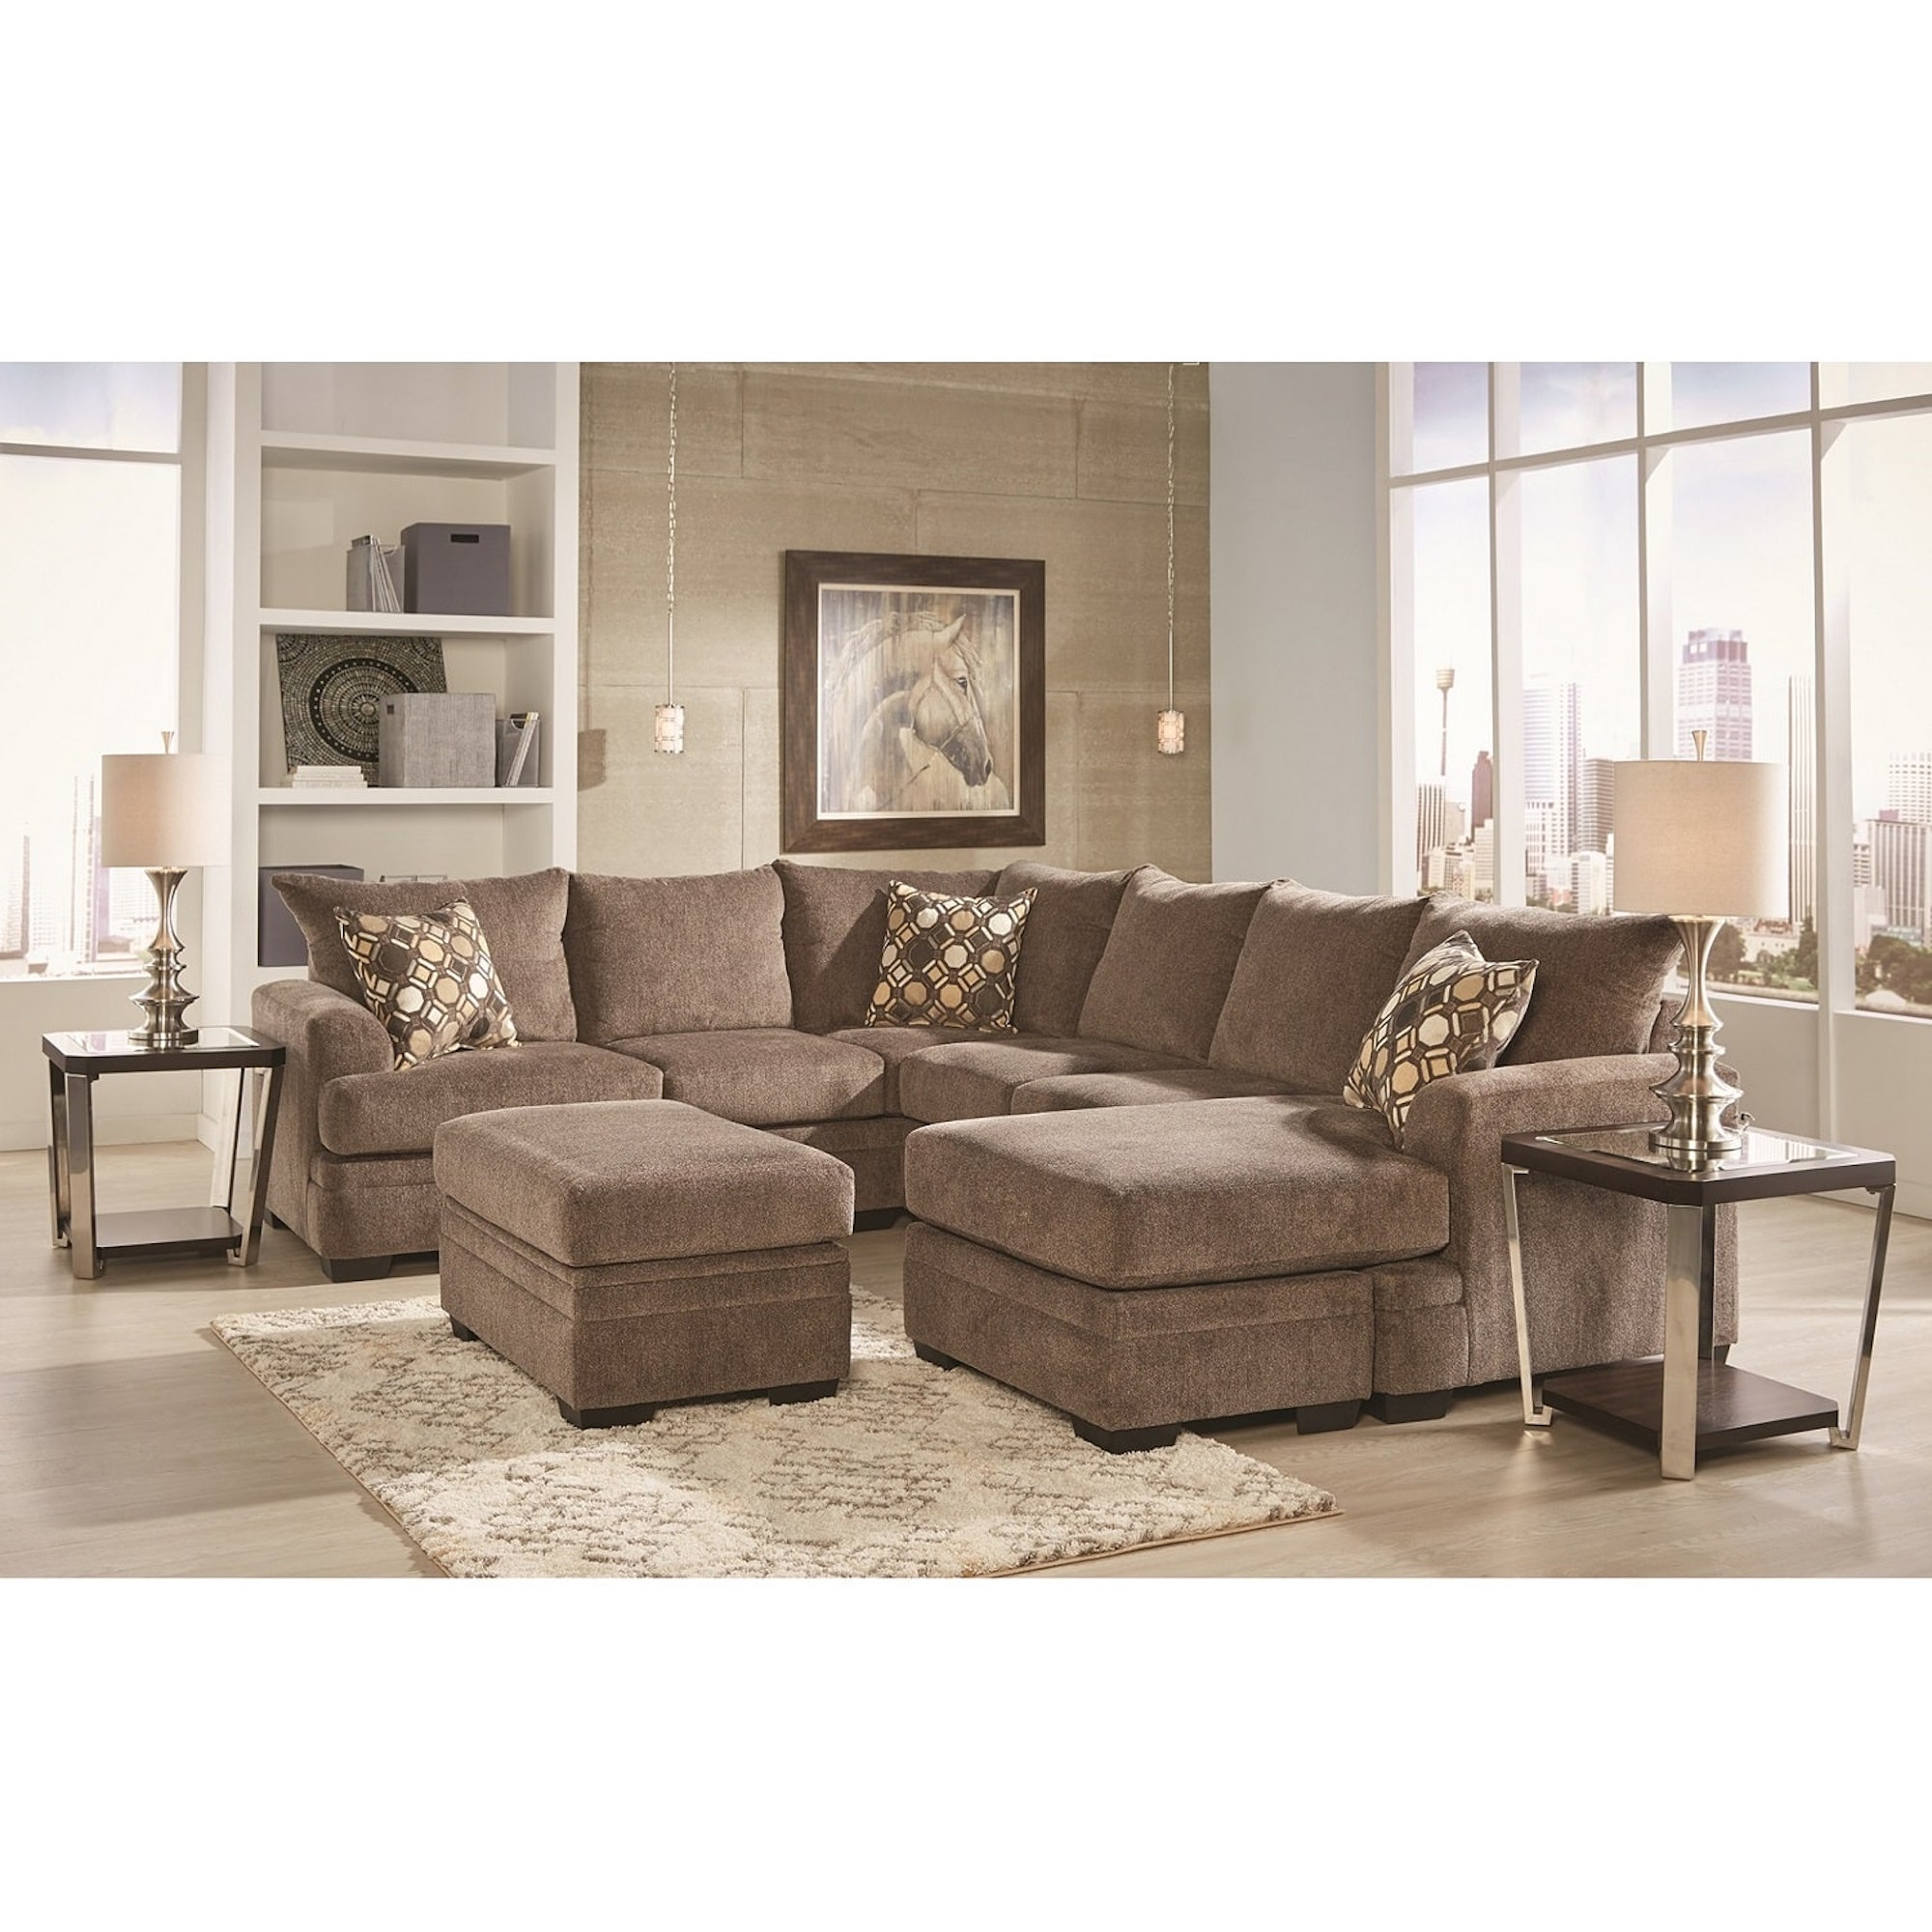 3-Piece Kimberly Sectional Living Room Collection with Storage Ottoman